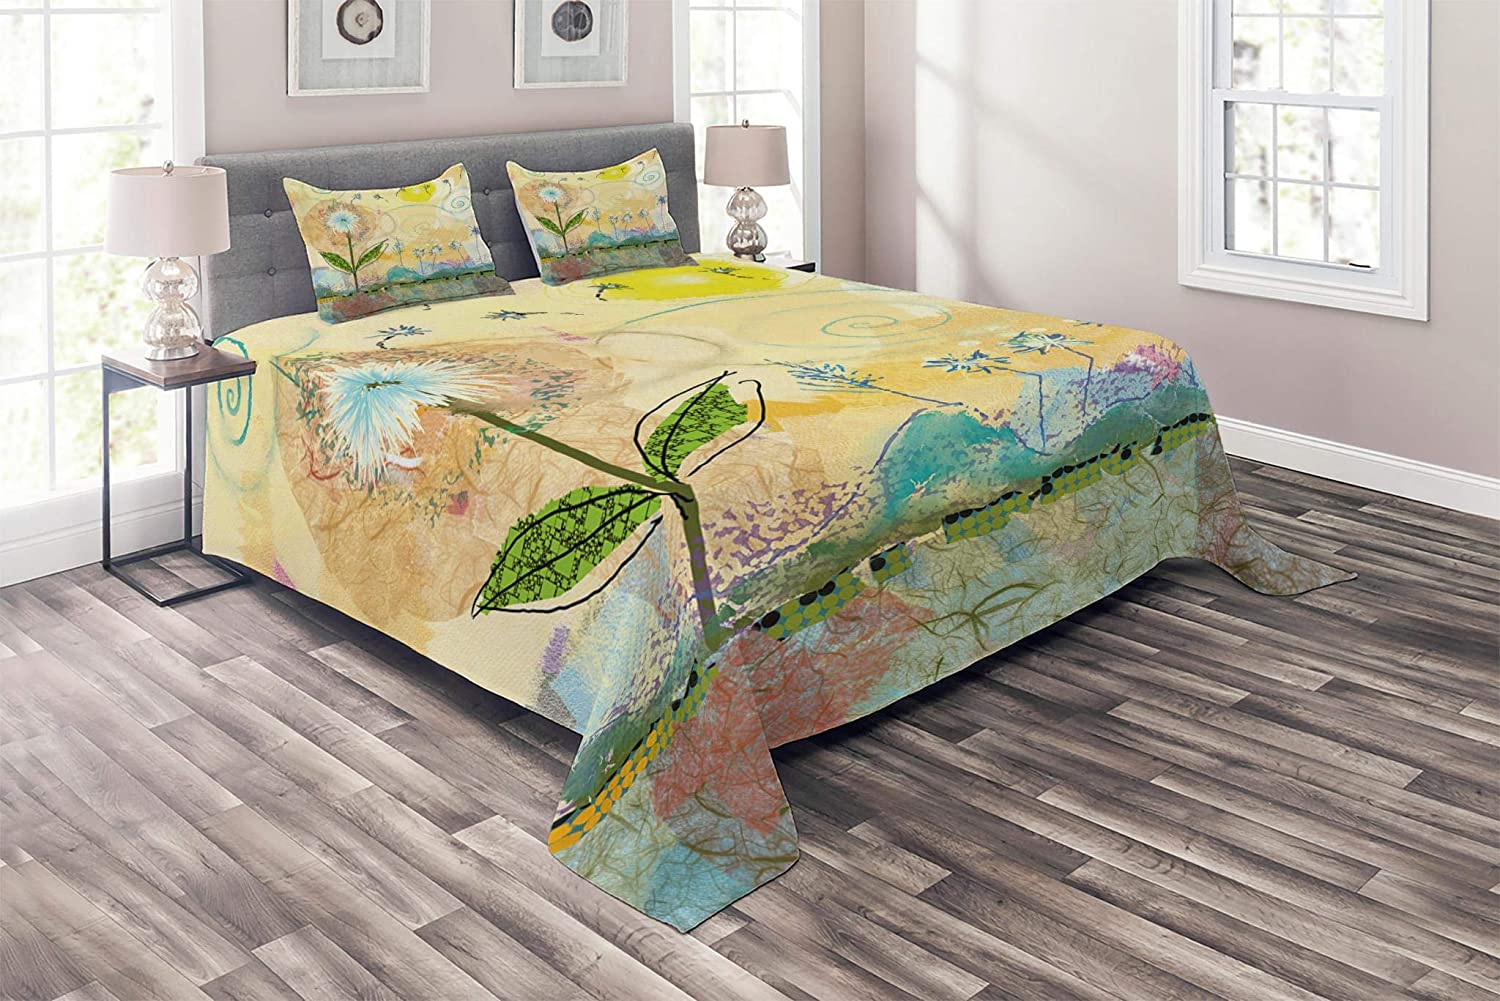 Lunarable Flower Coverlet Set Twin Size, Abstract Painting with Childish Spirals and Sun Baby Nursery Themed Work of Art, 2 Piece Decorative Quilted Bedspread Set with 1 Pillow Sham, Multicolor bedcen_21119_twin